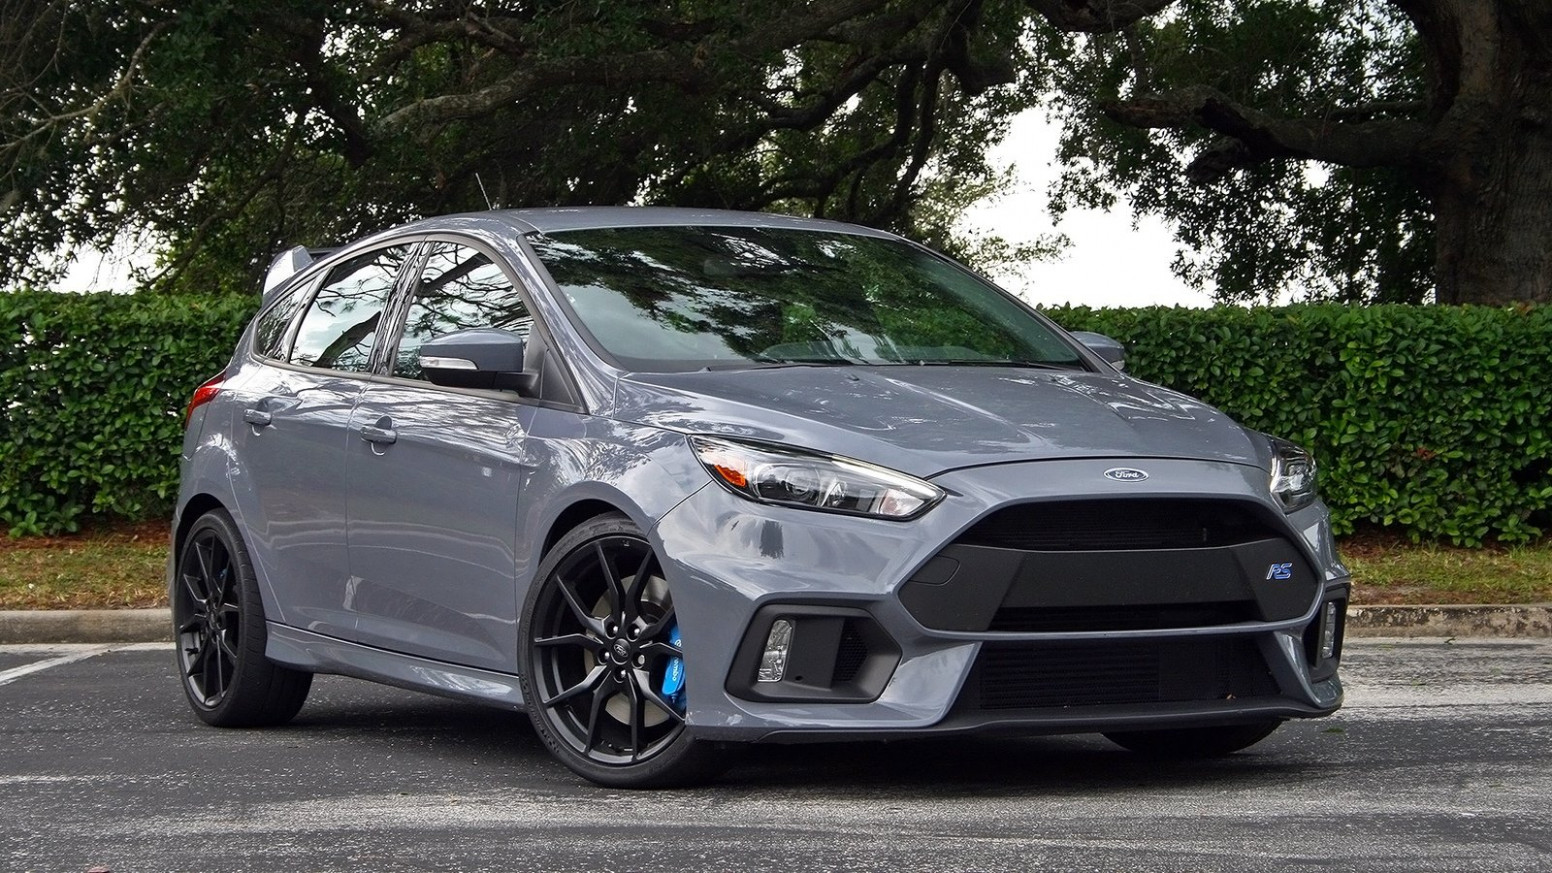 Redesign and Concept 2022 Ford Focus